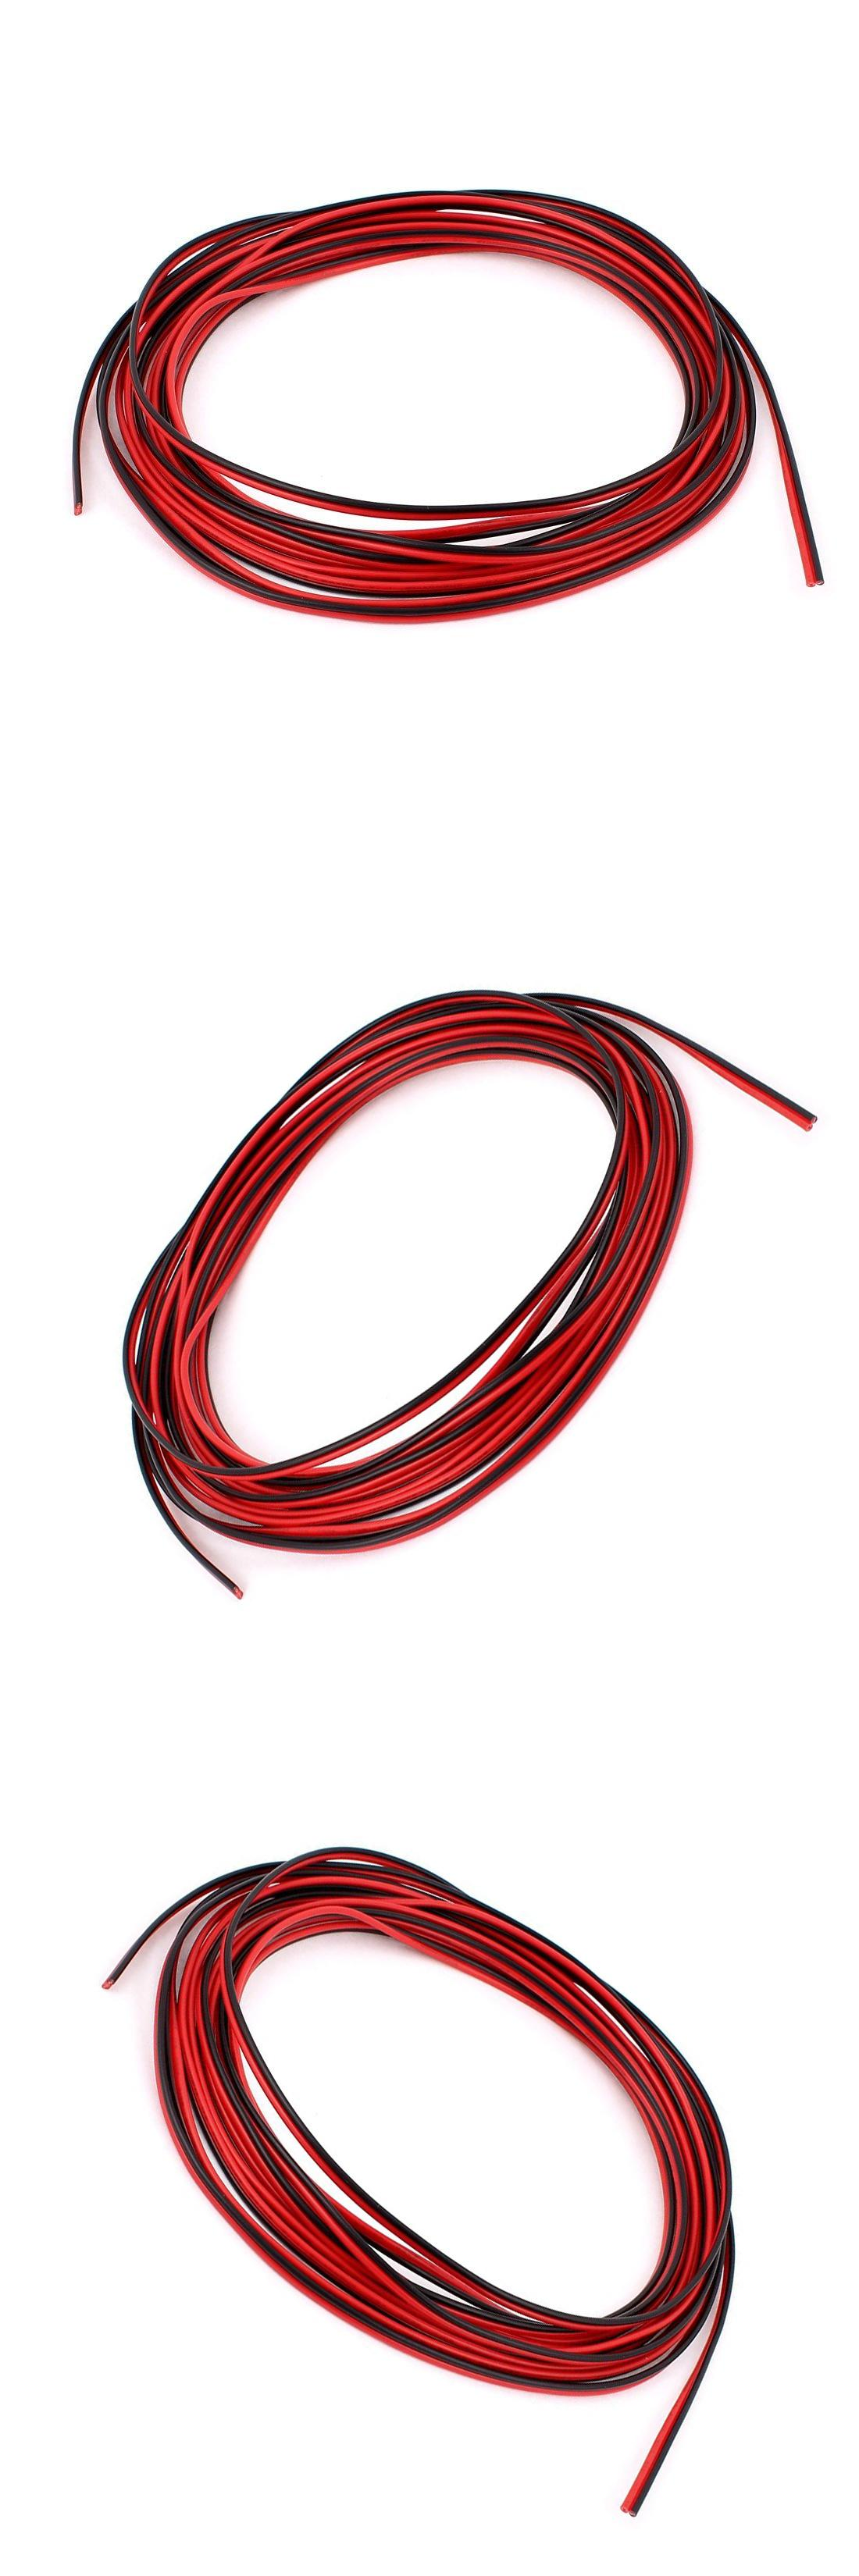 Visit to Buy] 5M 22AWG Red Black Dual Core Electric Cable Wire for ...